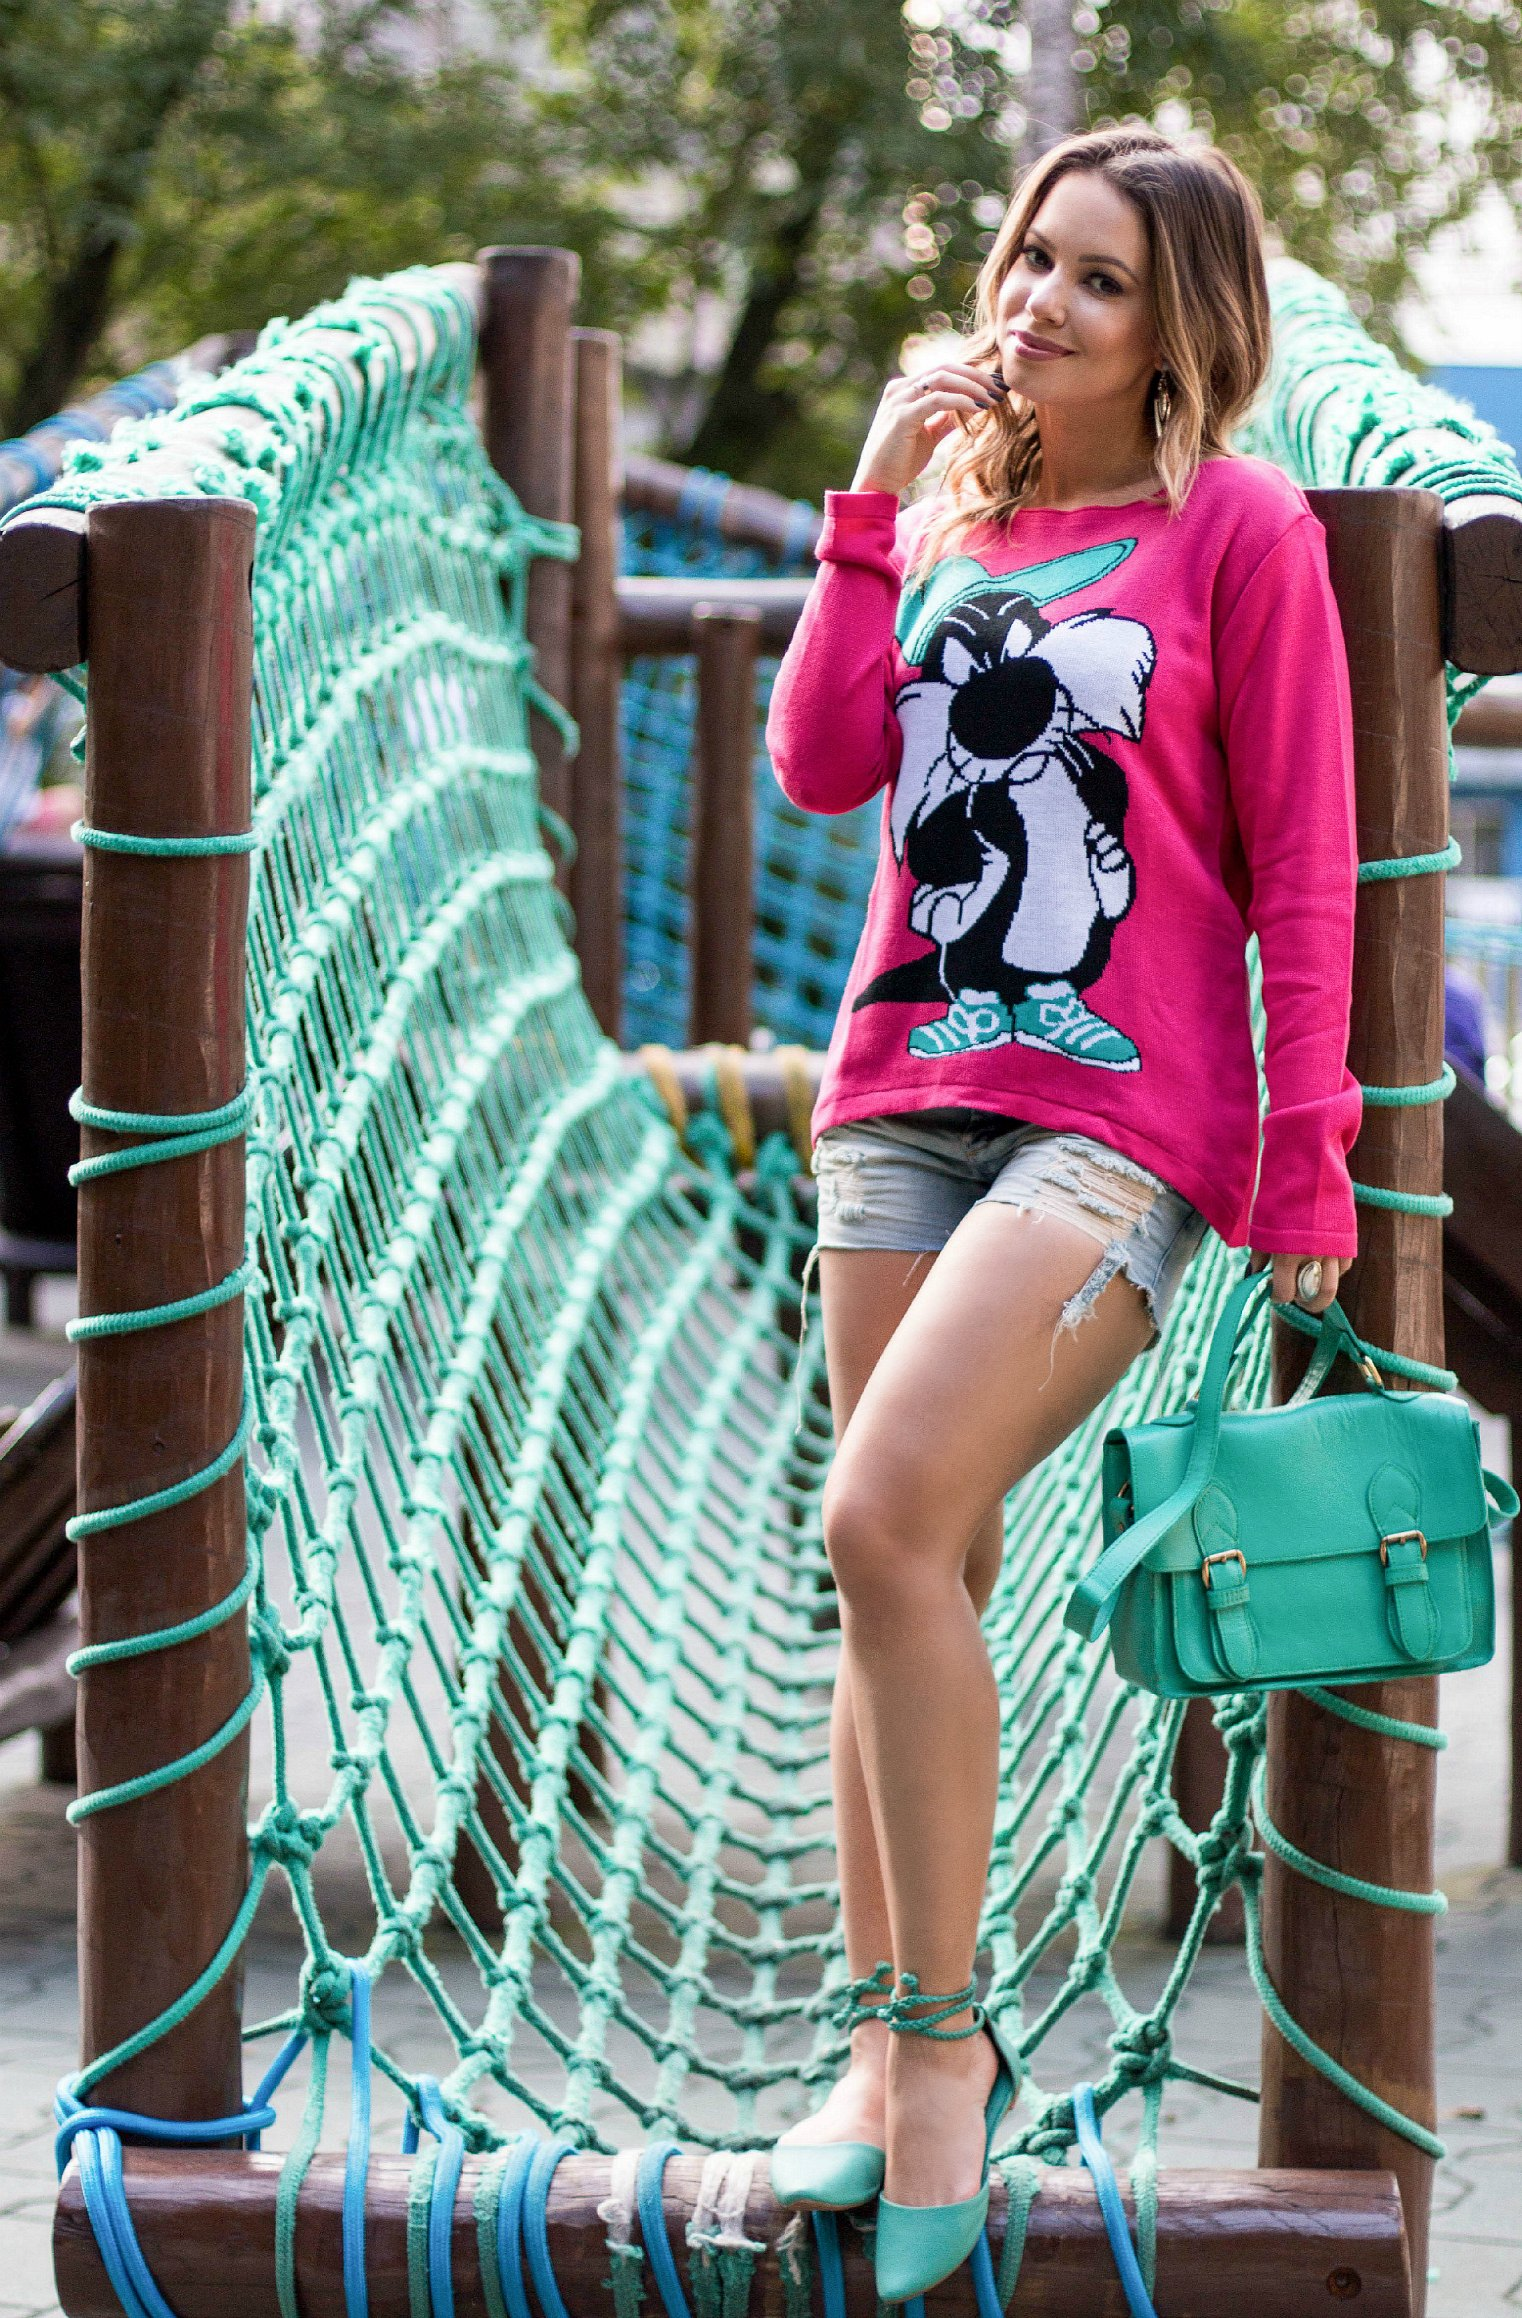 juliana goes | juliana goes blog | dica de moda | inspiraçao de moda | blog de moda | via mia | via mia em santos